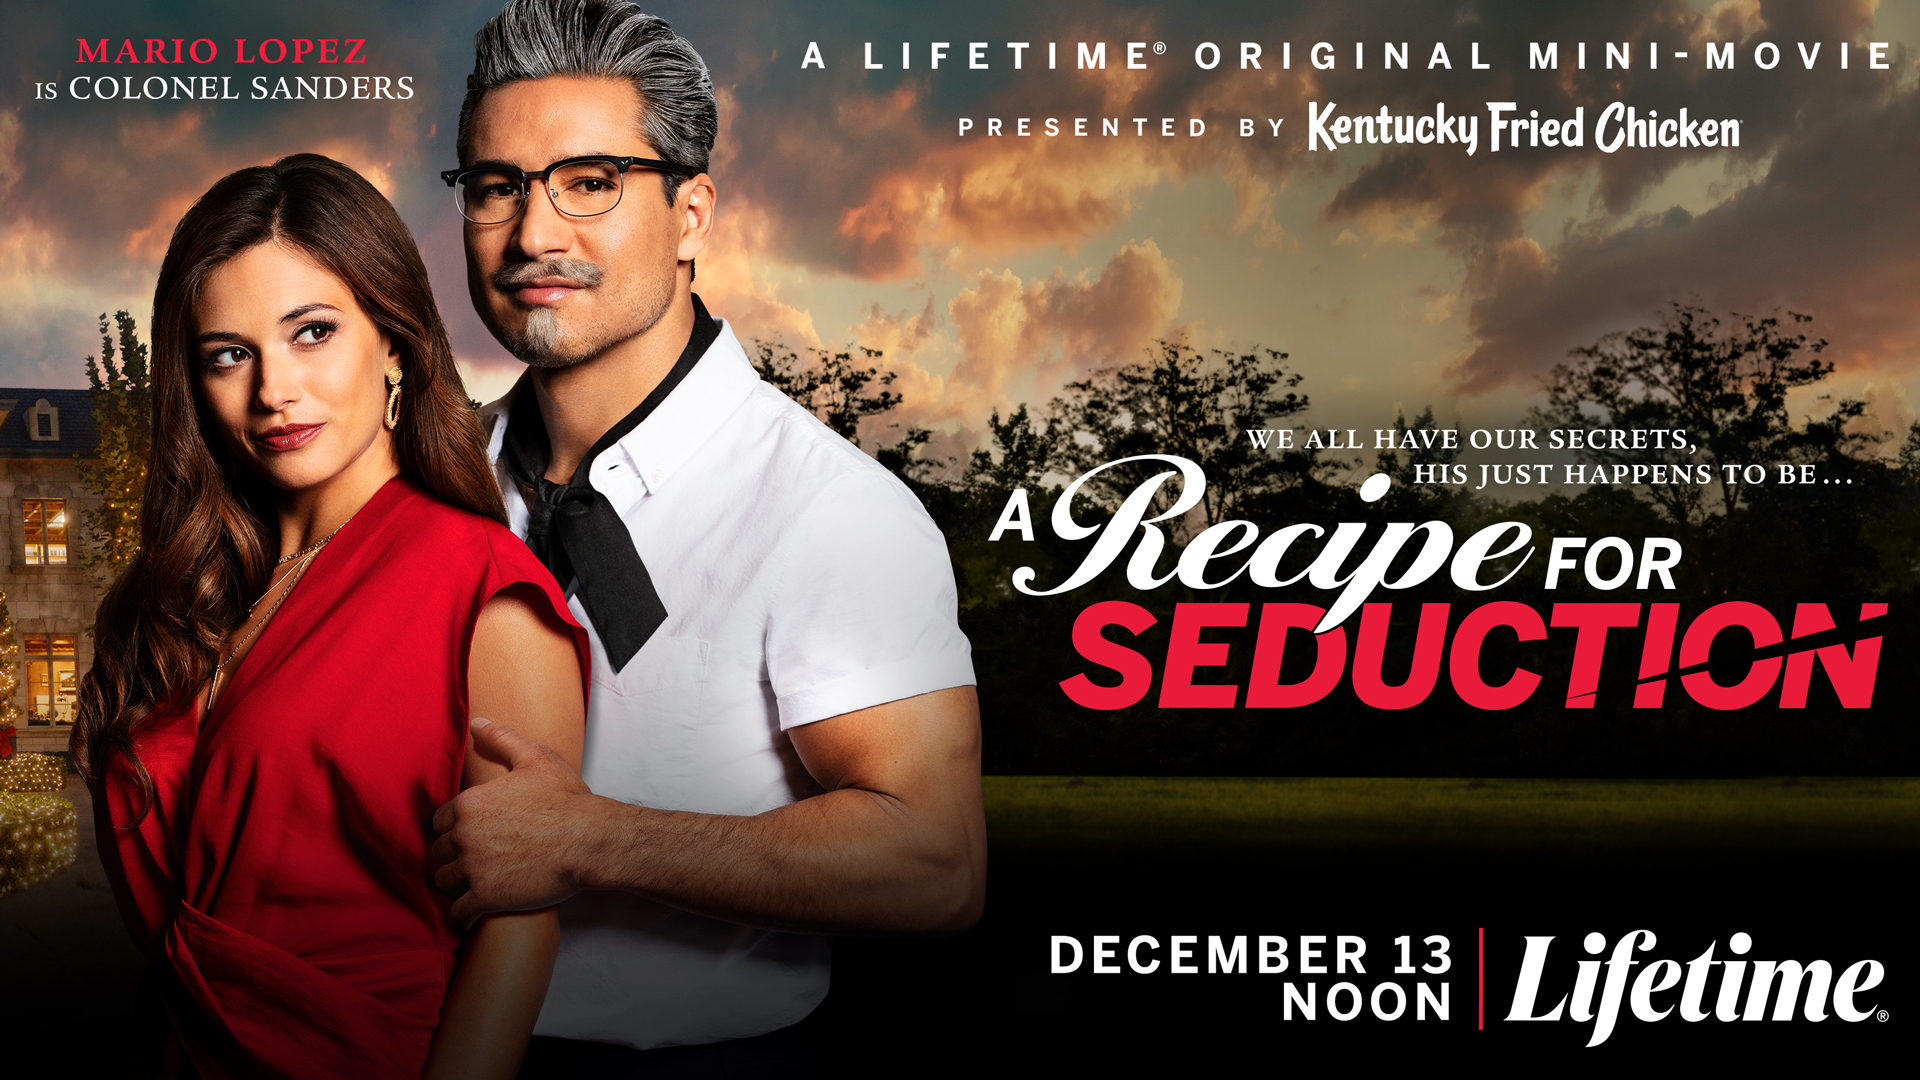 The Poster for the KFC Movie Starring Mario Lopez